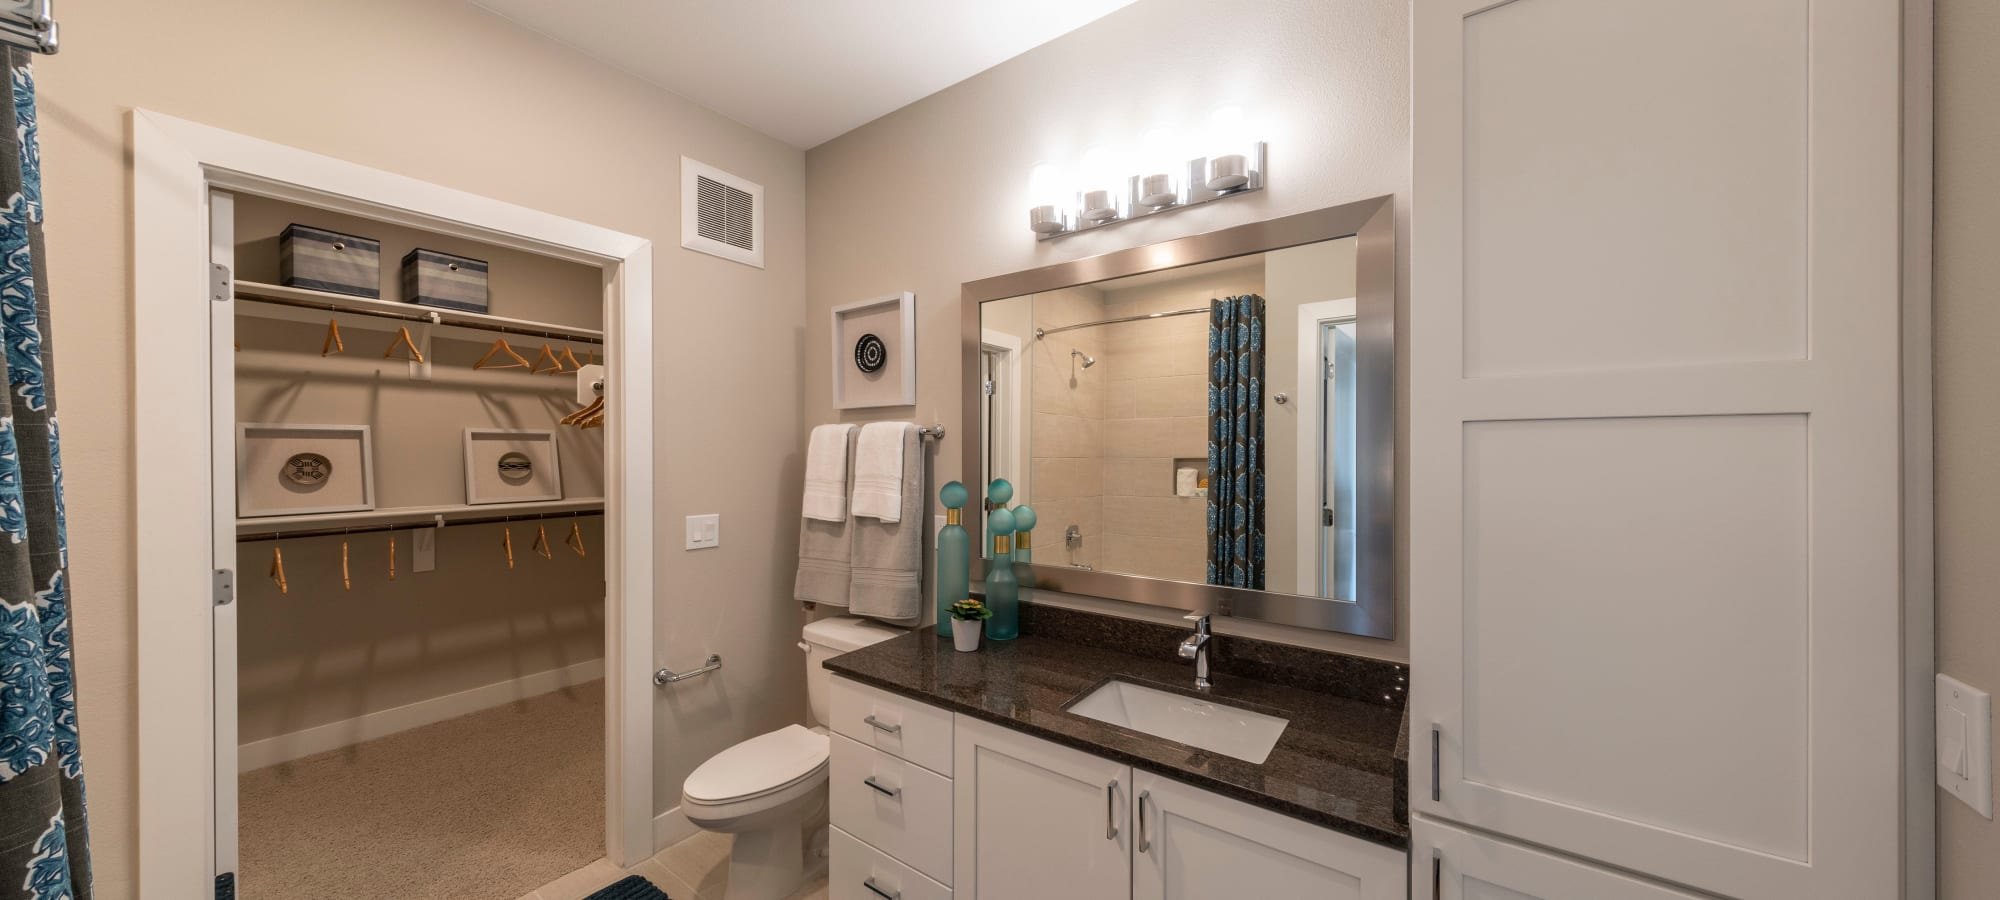 Bathroom with adjacent walk-in closet in a model home at Carter in Scottsdale, Arizona